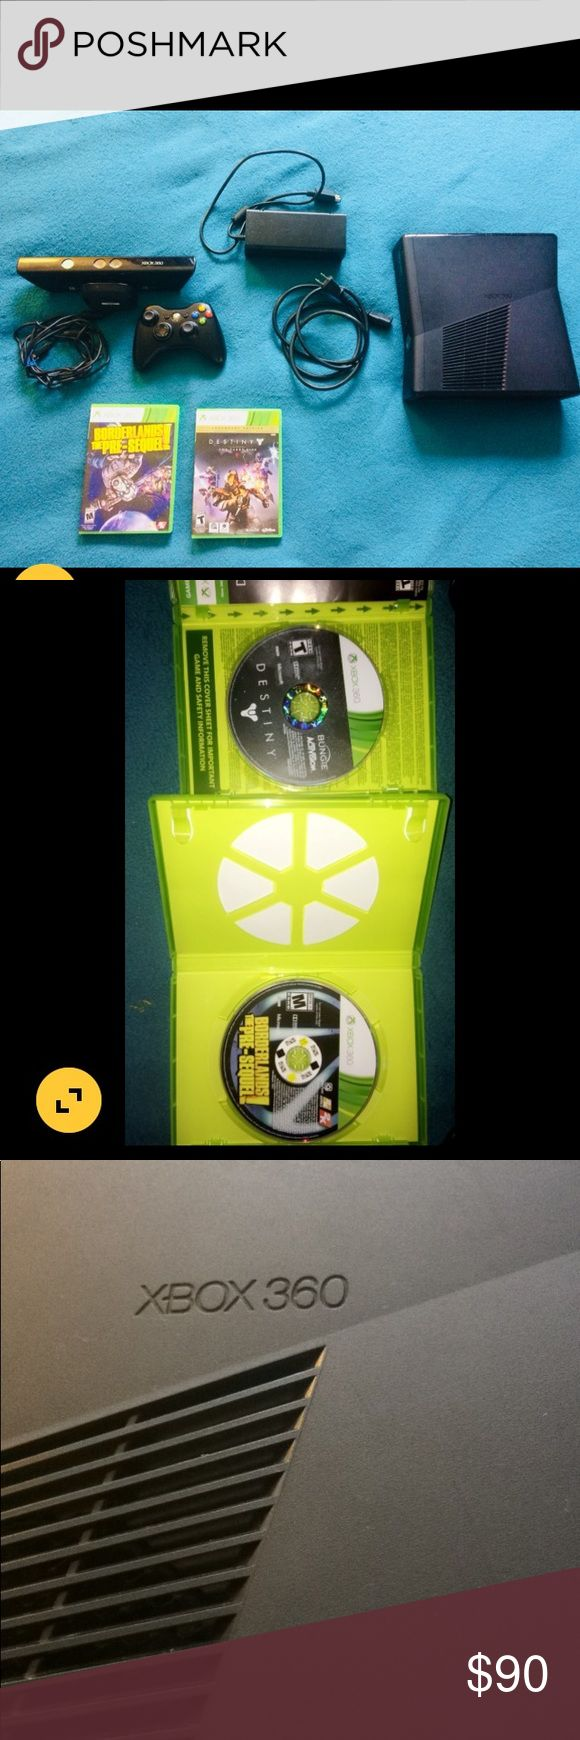 Xbox 360 bundle This bundle includes: -Xbox 360 slim -Kinect  -1 controller  -power cord -2 videogames (borderlands presequel and destiny )  ***Does not come w/ HDMI cord*** xbox Other #xbox360